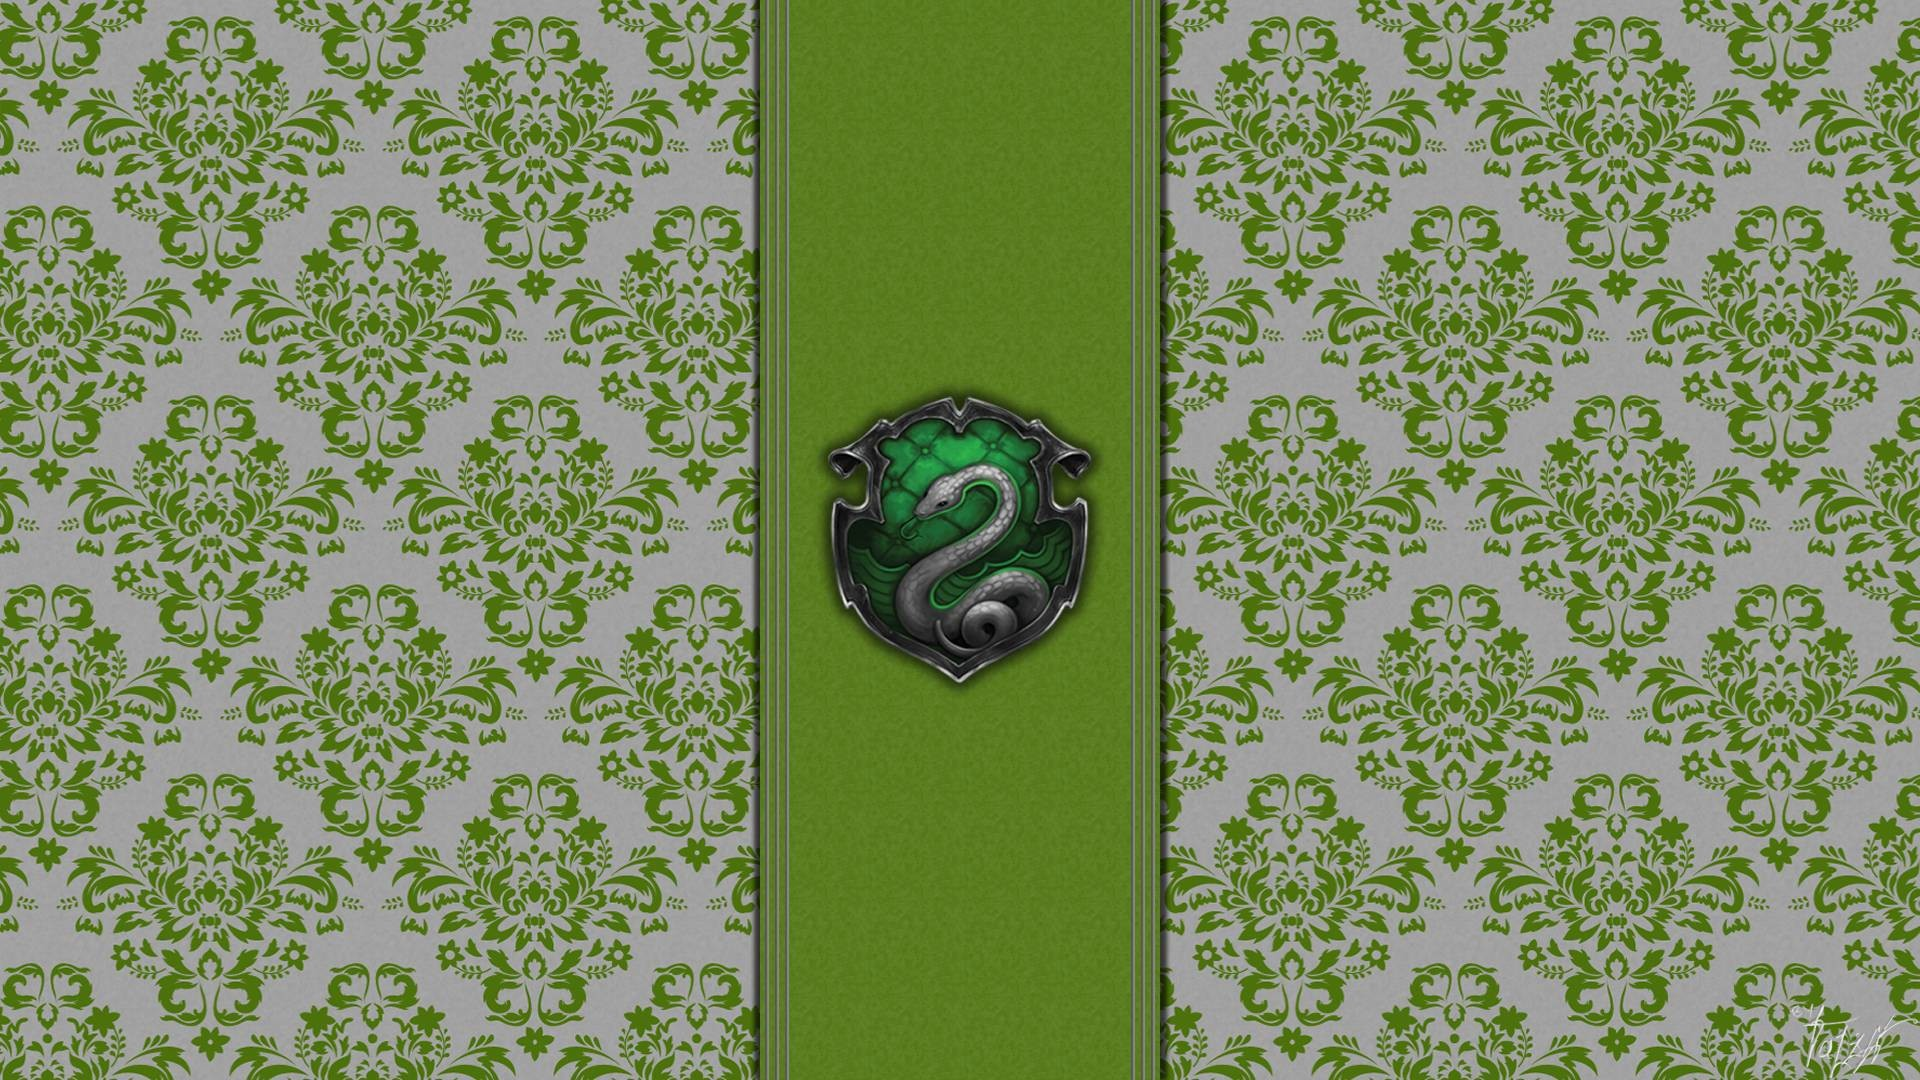 Wallpaper for all the Slytherins | Slytherin | Pinterest